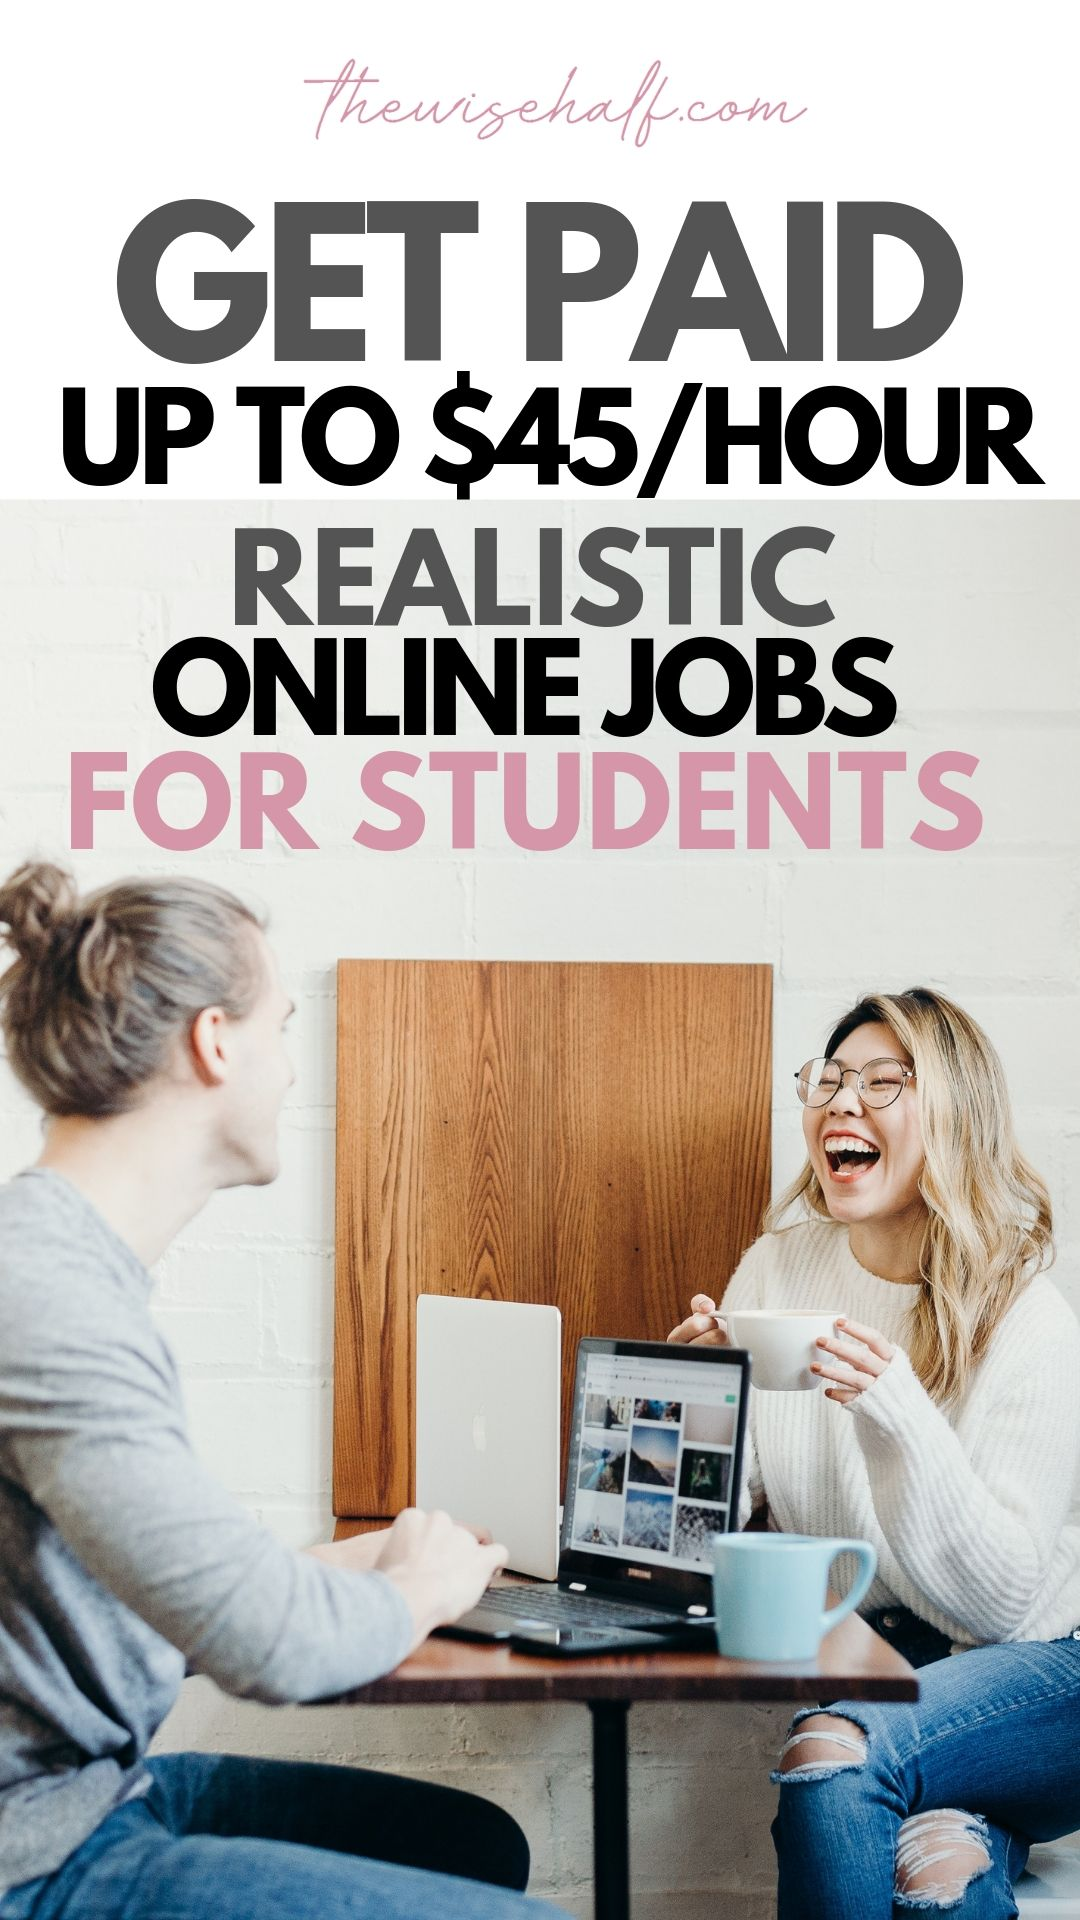 10 Realistic Online Jobs For Students And Get Paid up to